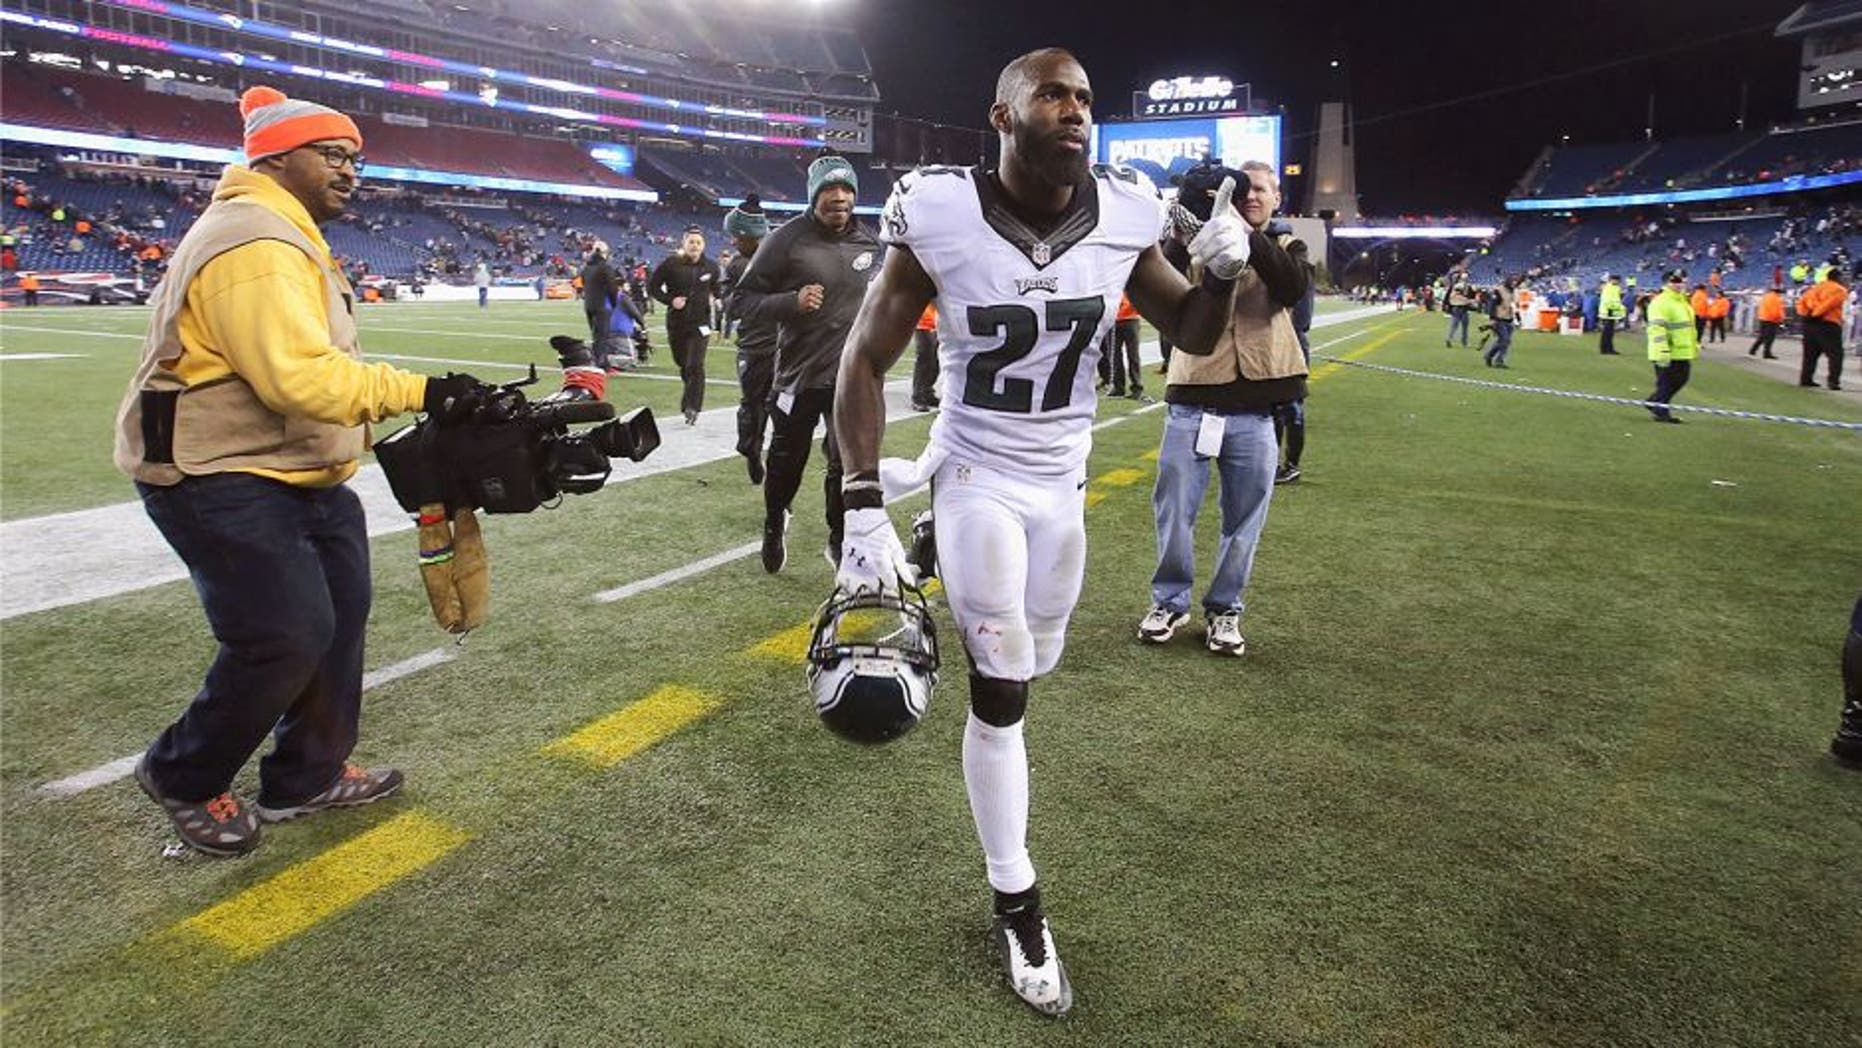 FOXBORO, MA - DECEMBER 06: Malcolm Jenkins #27 of the Philadelphia Eagles exits the field after the game between the New England Patriots and the Philadelphia Eagles at Gillette Stadium on December 6, 2015 in Foxboro, Massachusetts. (Photo by Jim Rogash/Getty Images)